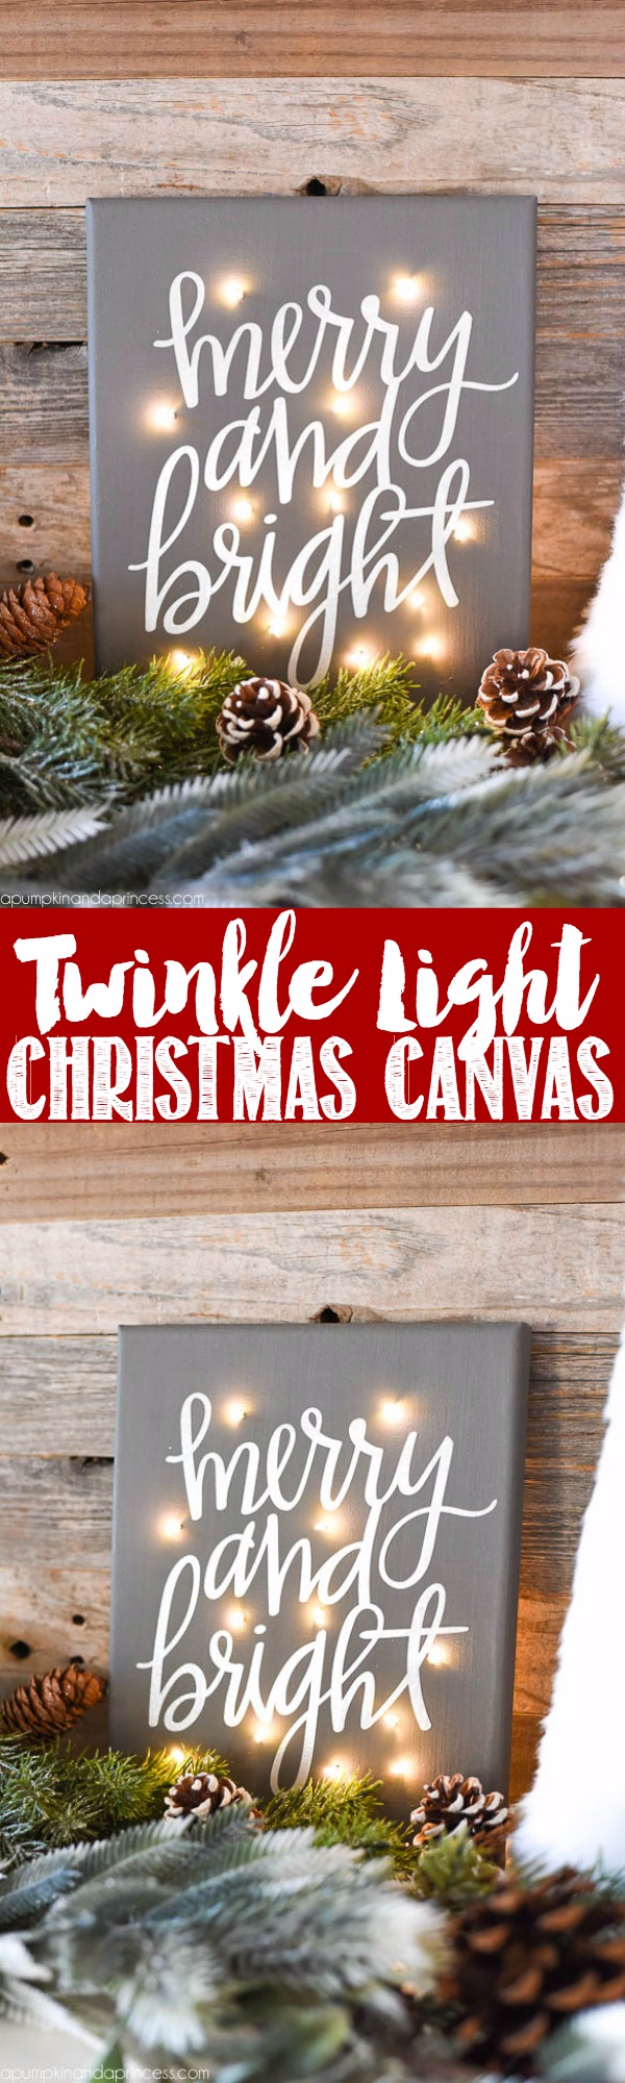 Fun Ways To Use Christmas Lights - DIY Twinkle Light Christmas Canvas - Best Easy DIY Ideas for String Lights for Room Decoration, Home Decor and Creative DIY Bedroom Lighting #diy #christmas #homedecor